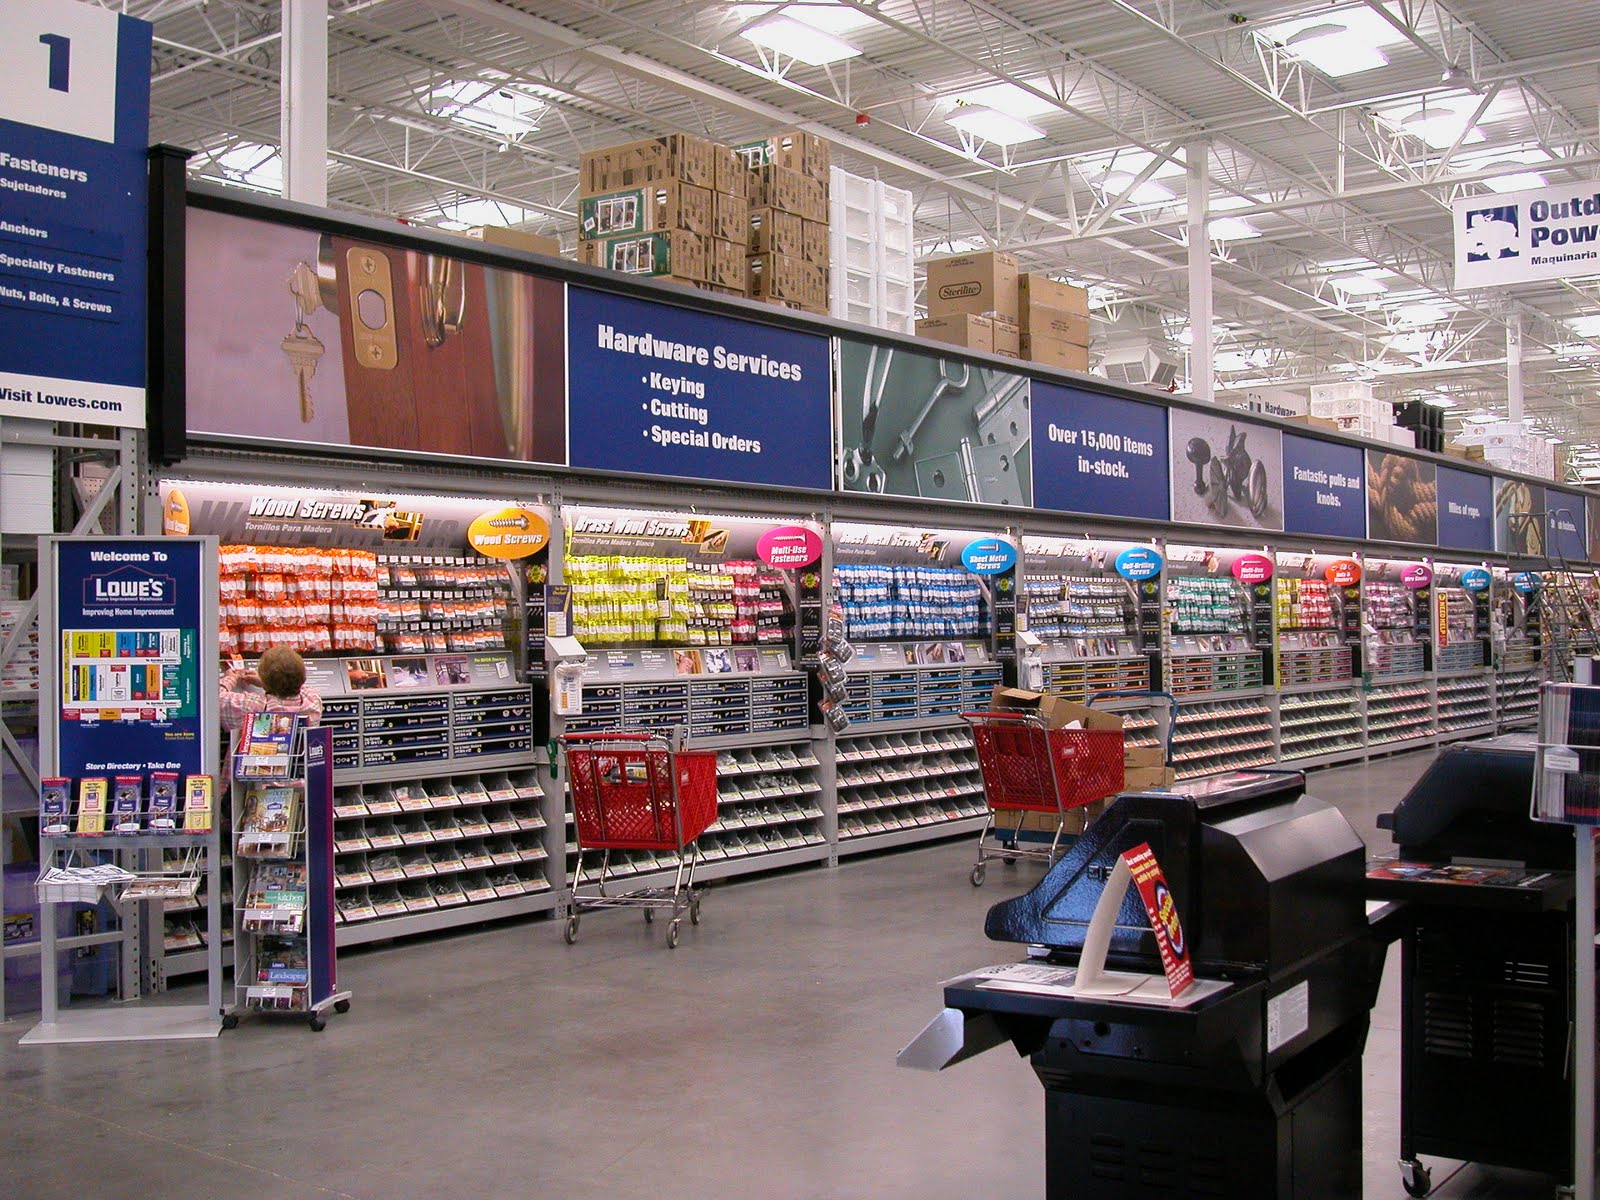 Lowes-Inside.jpg